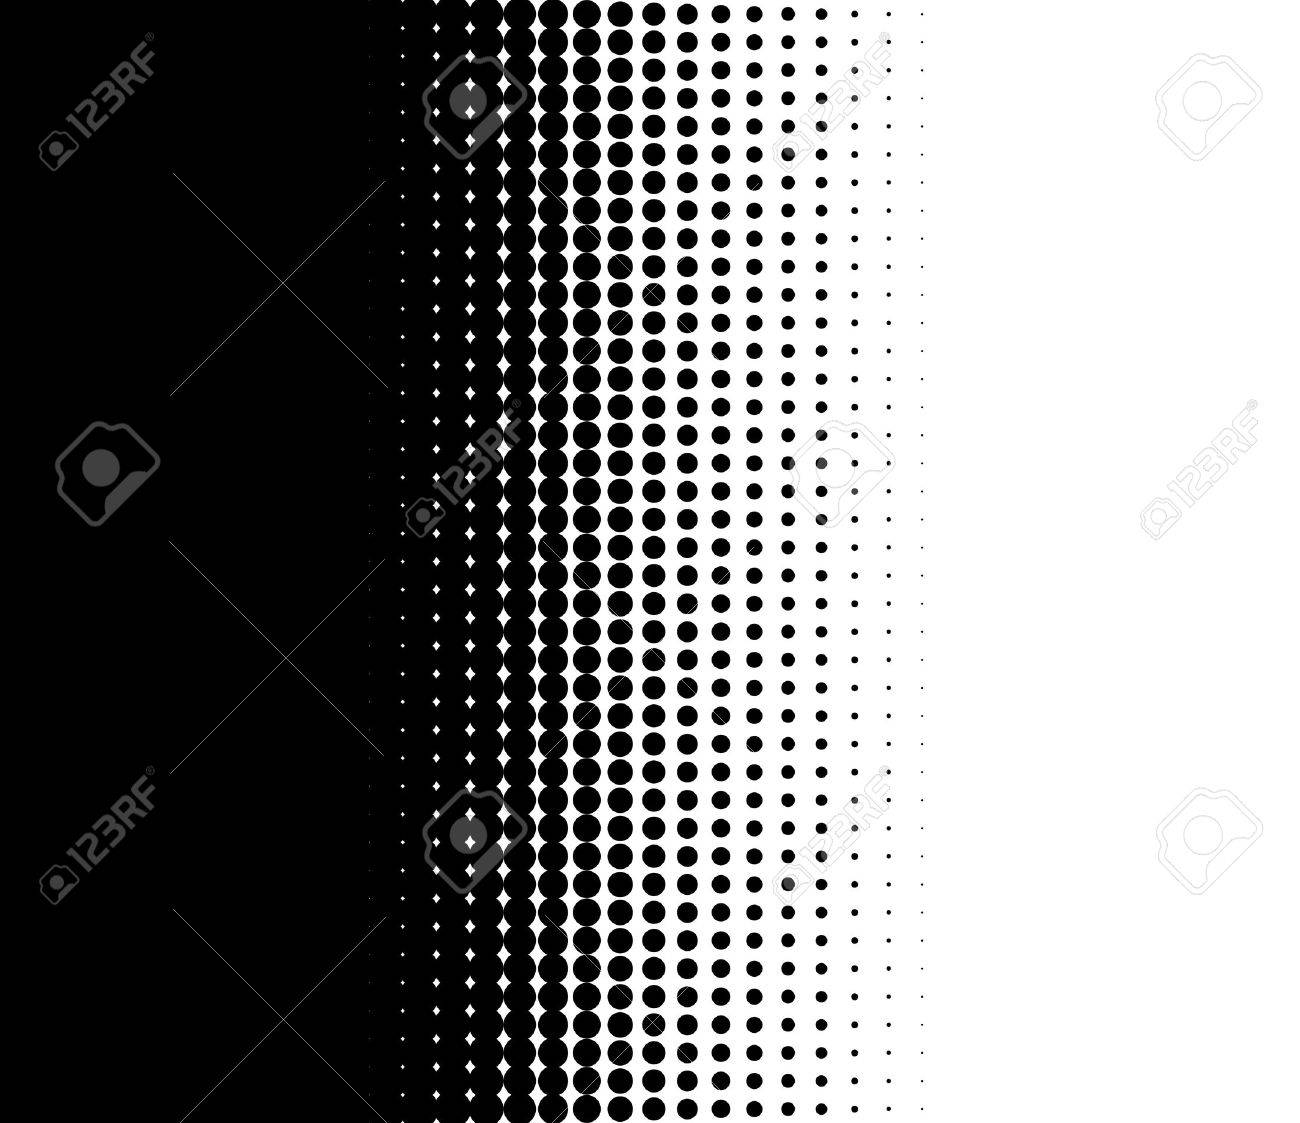 Background image transition - Background Transition Of Dots With Colors Black And White Stock Photo 42924024